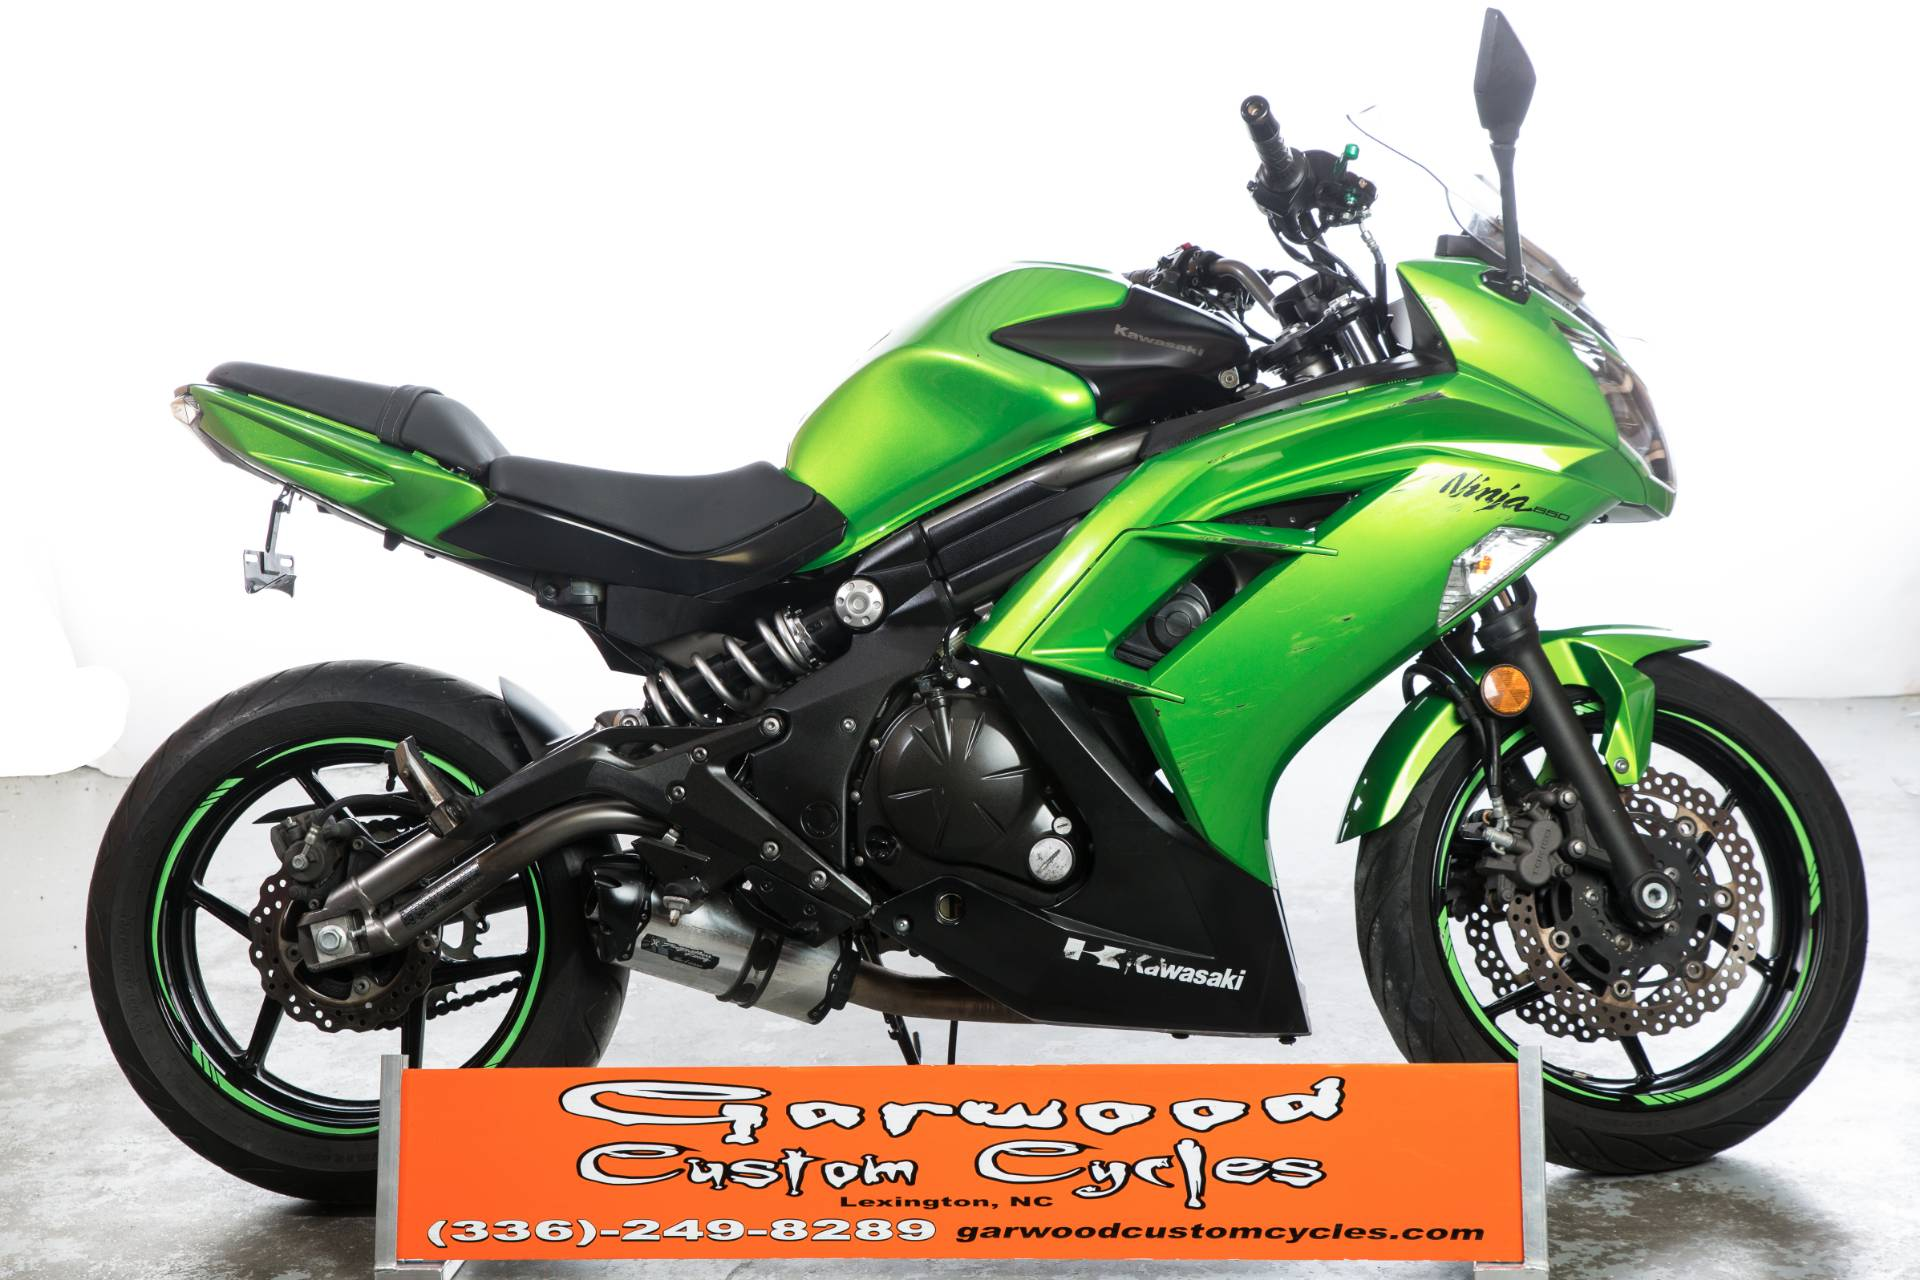 2012 Kawasaki Ninja® 650 in Lexington, North Carolina